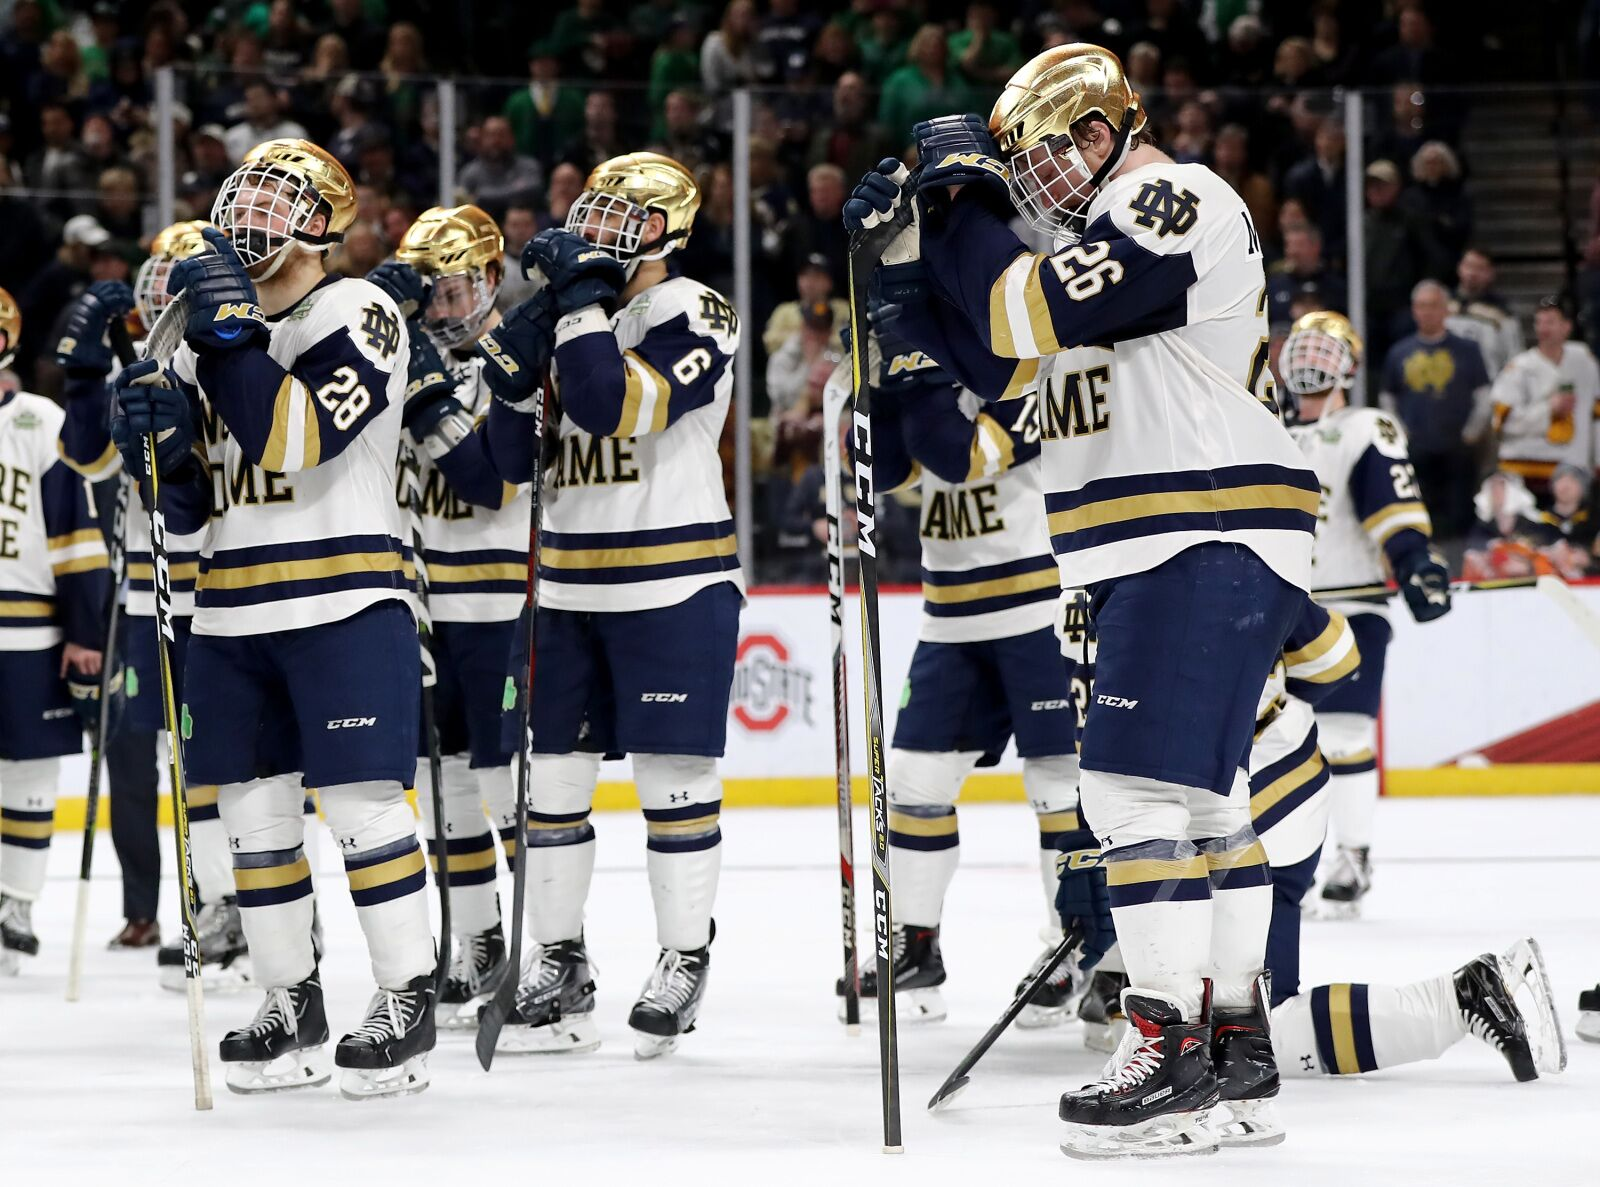 Notre Dame Hockey in Danger of Missing NCAA Tournament